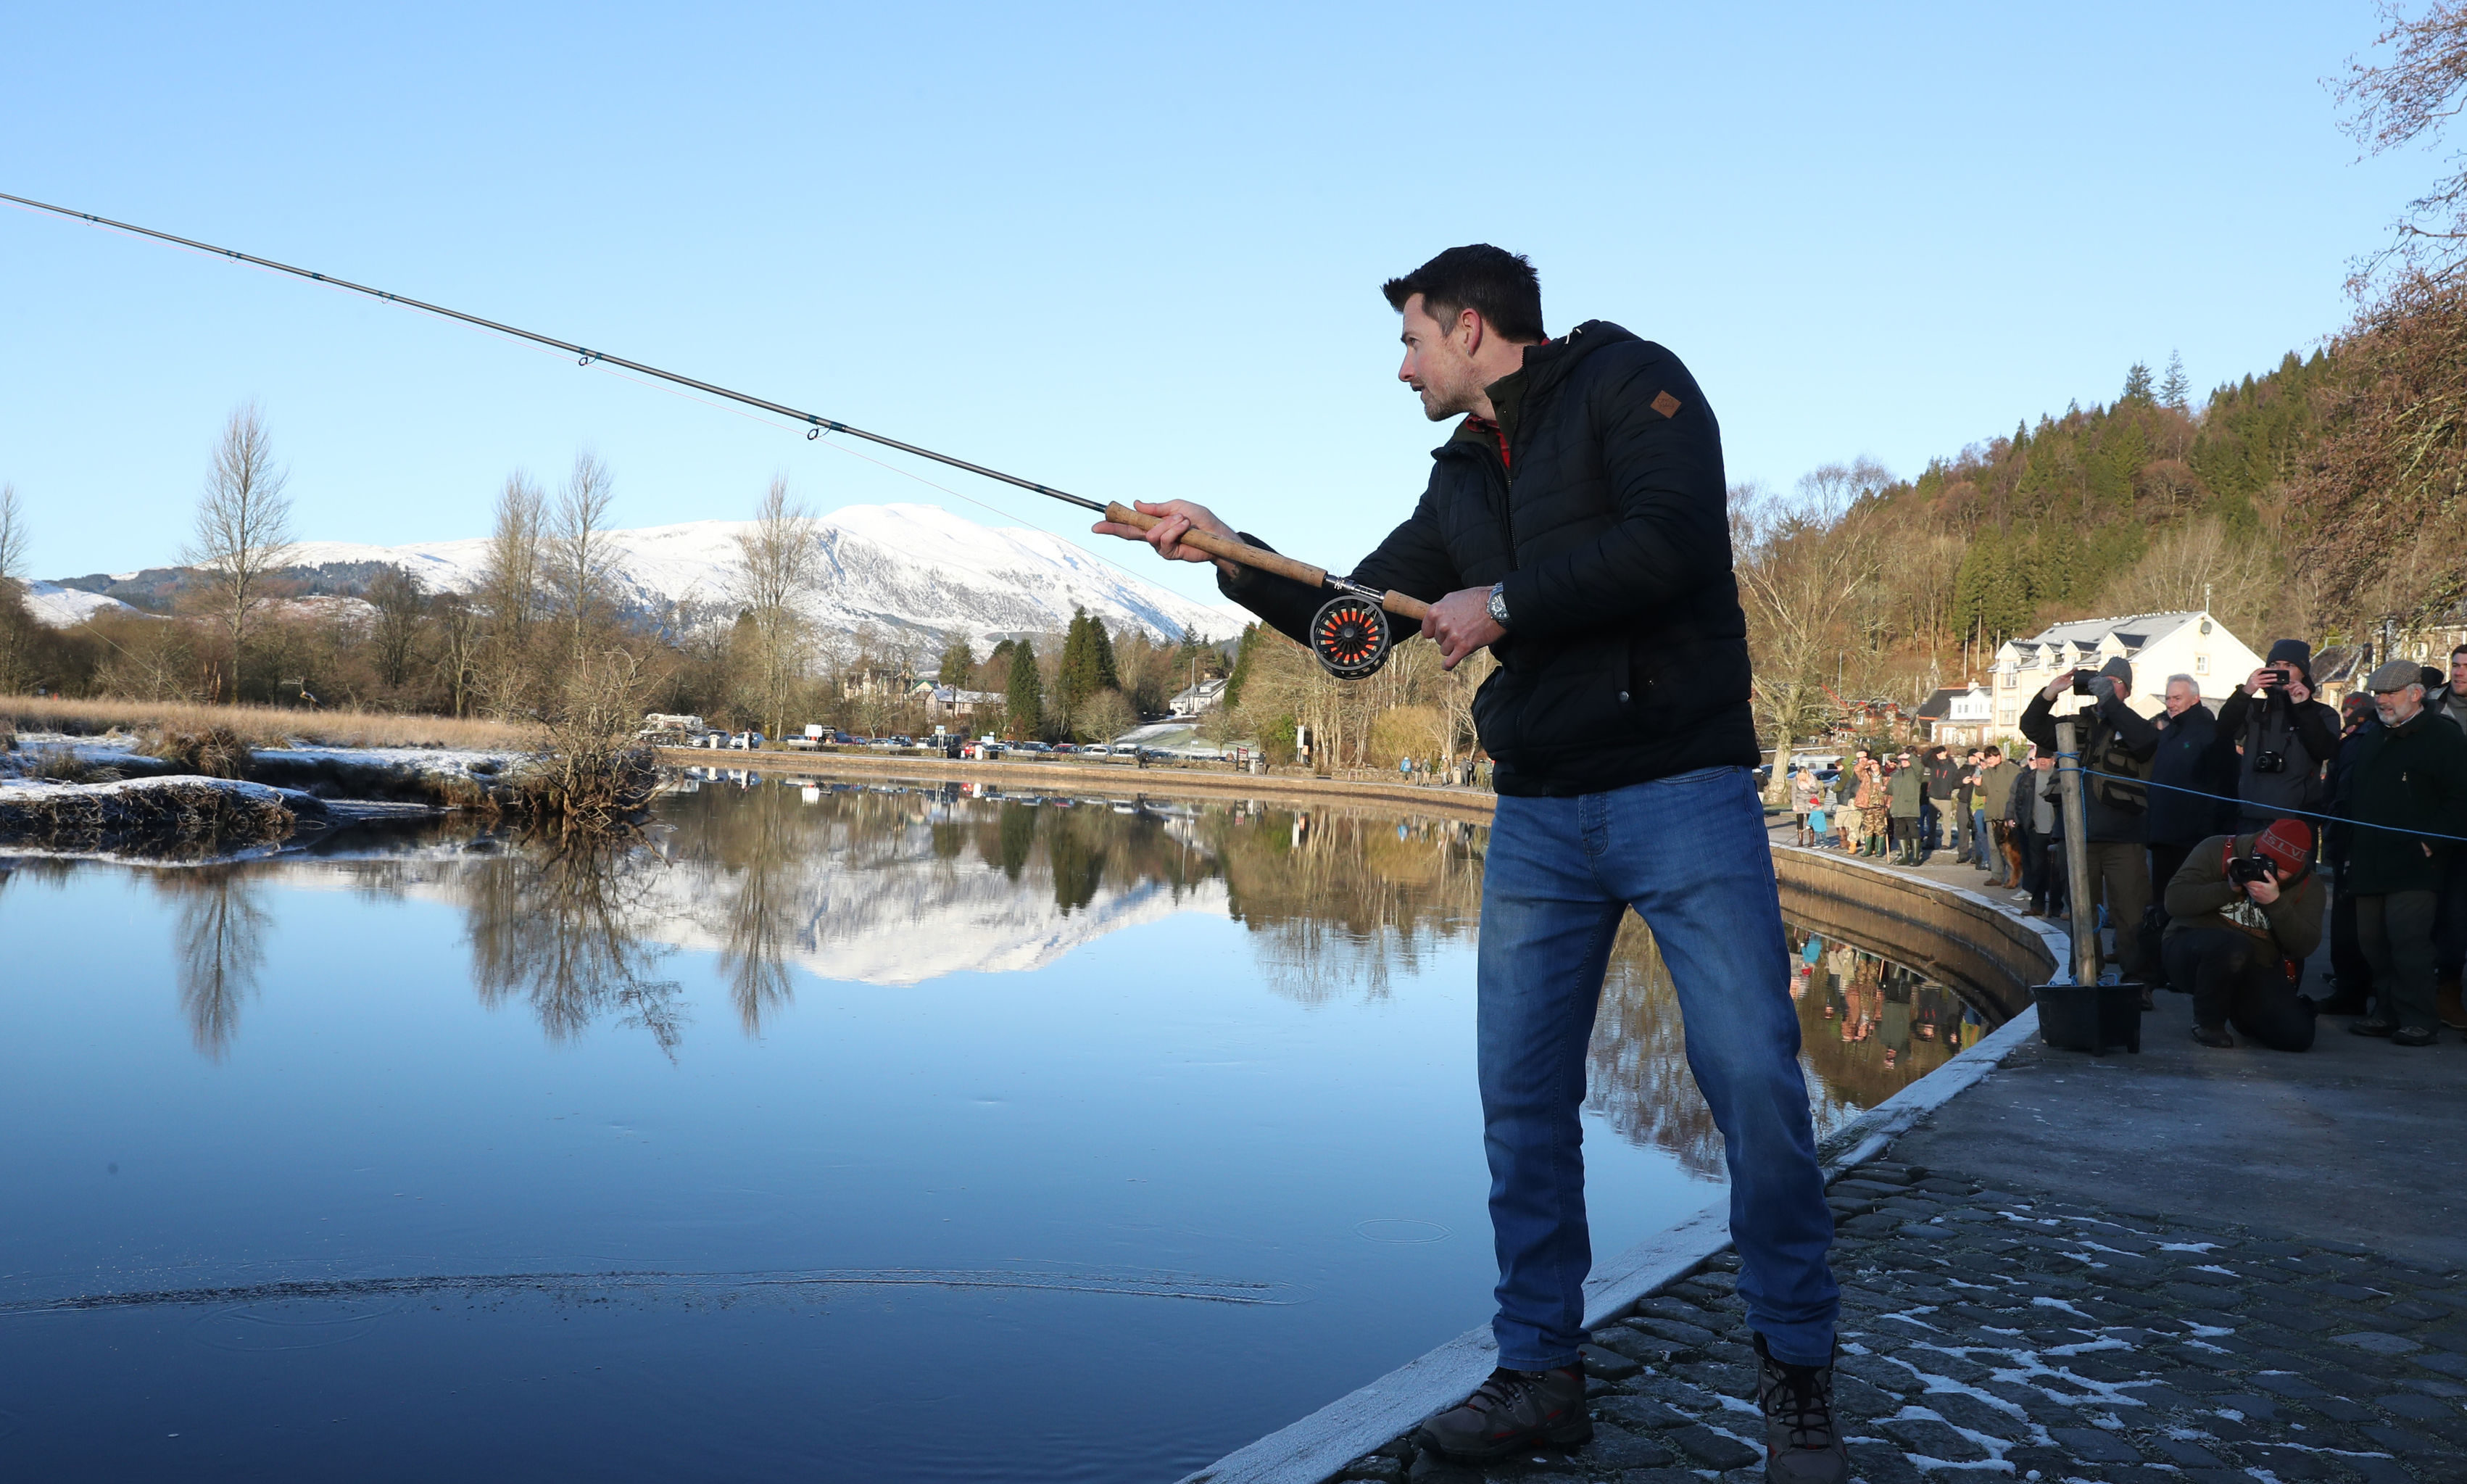 Fisherman James Stokoe, winner of the BBC's Big Fish competition launches  fishery season on the River Teith at Callander,